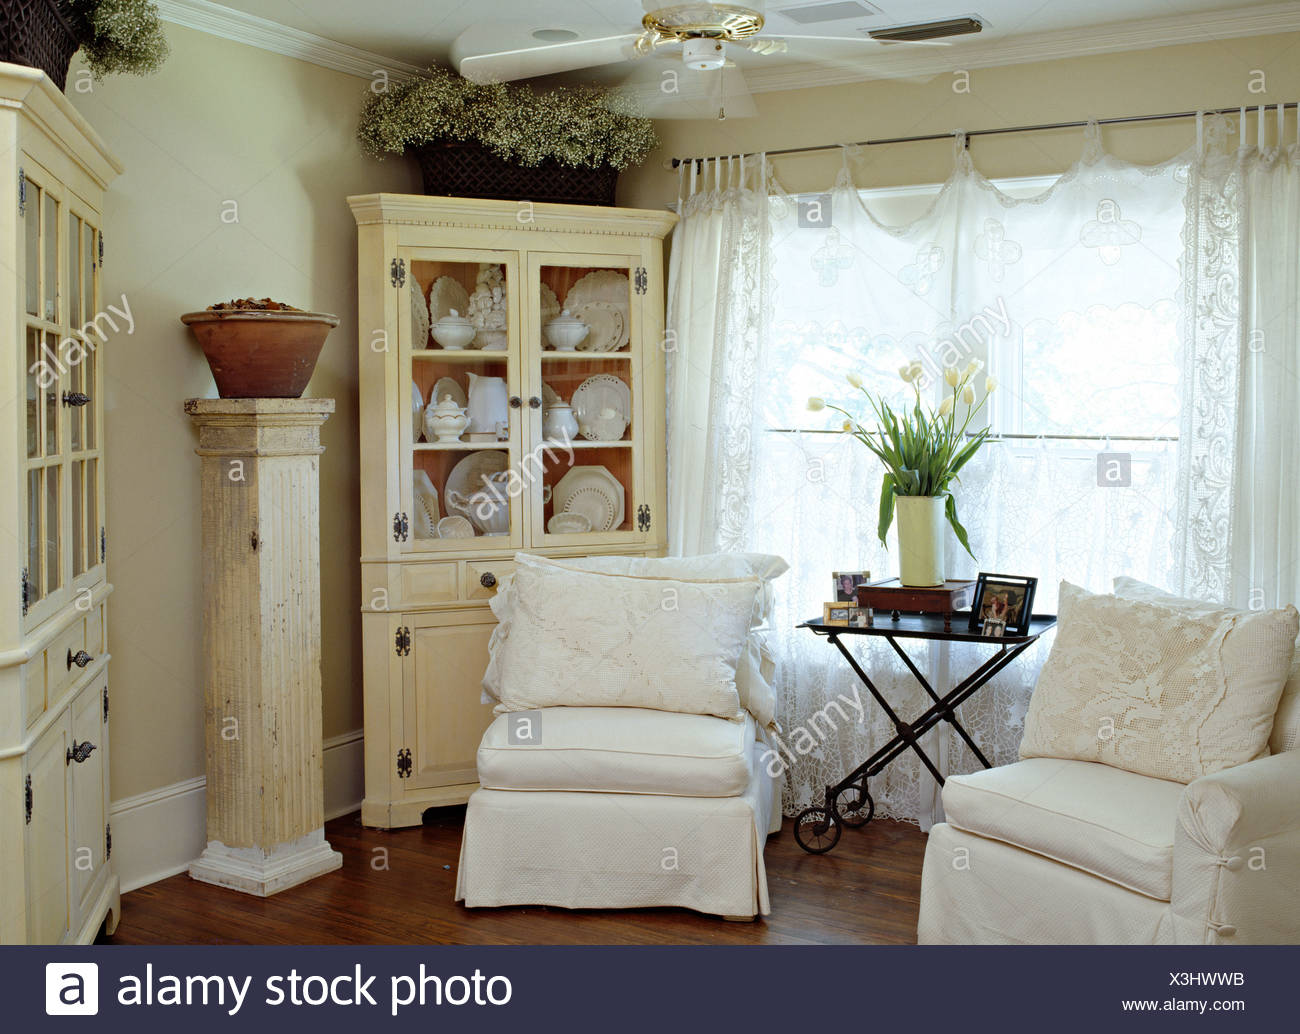 White loose covers on chairs in front of window with lace curtains in cottage living room with painted dresser and tall pedestal